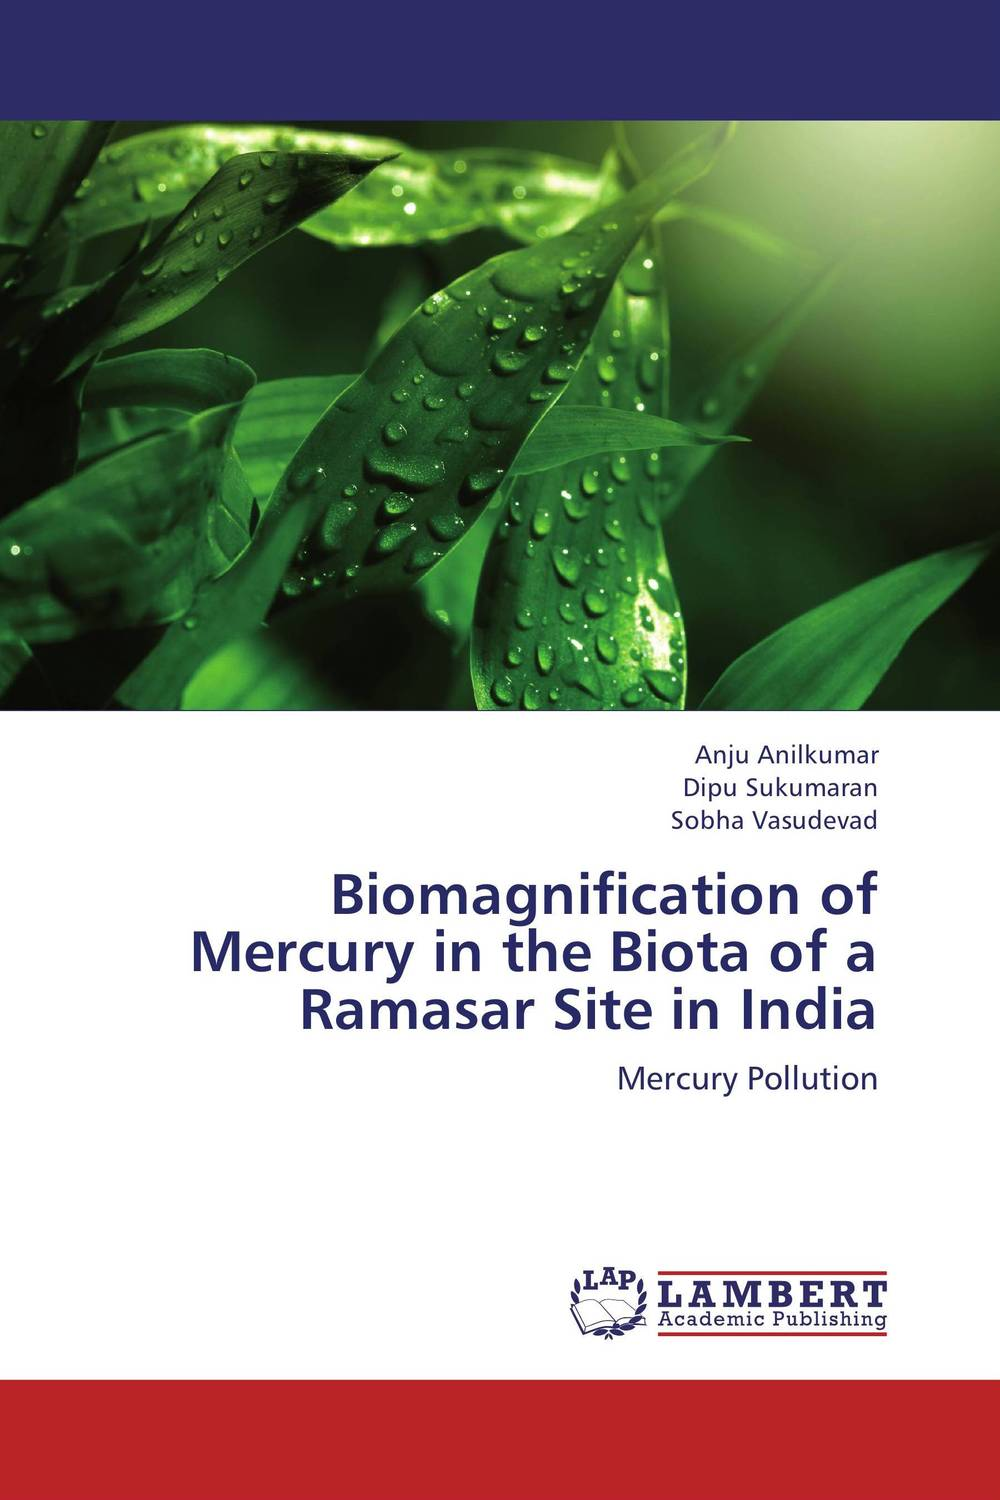 Biomagnification of Mercury in the Biota of a Ramasar Site in India biomagnification of mercury in the biota of a ramasar site in india